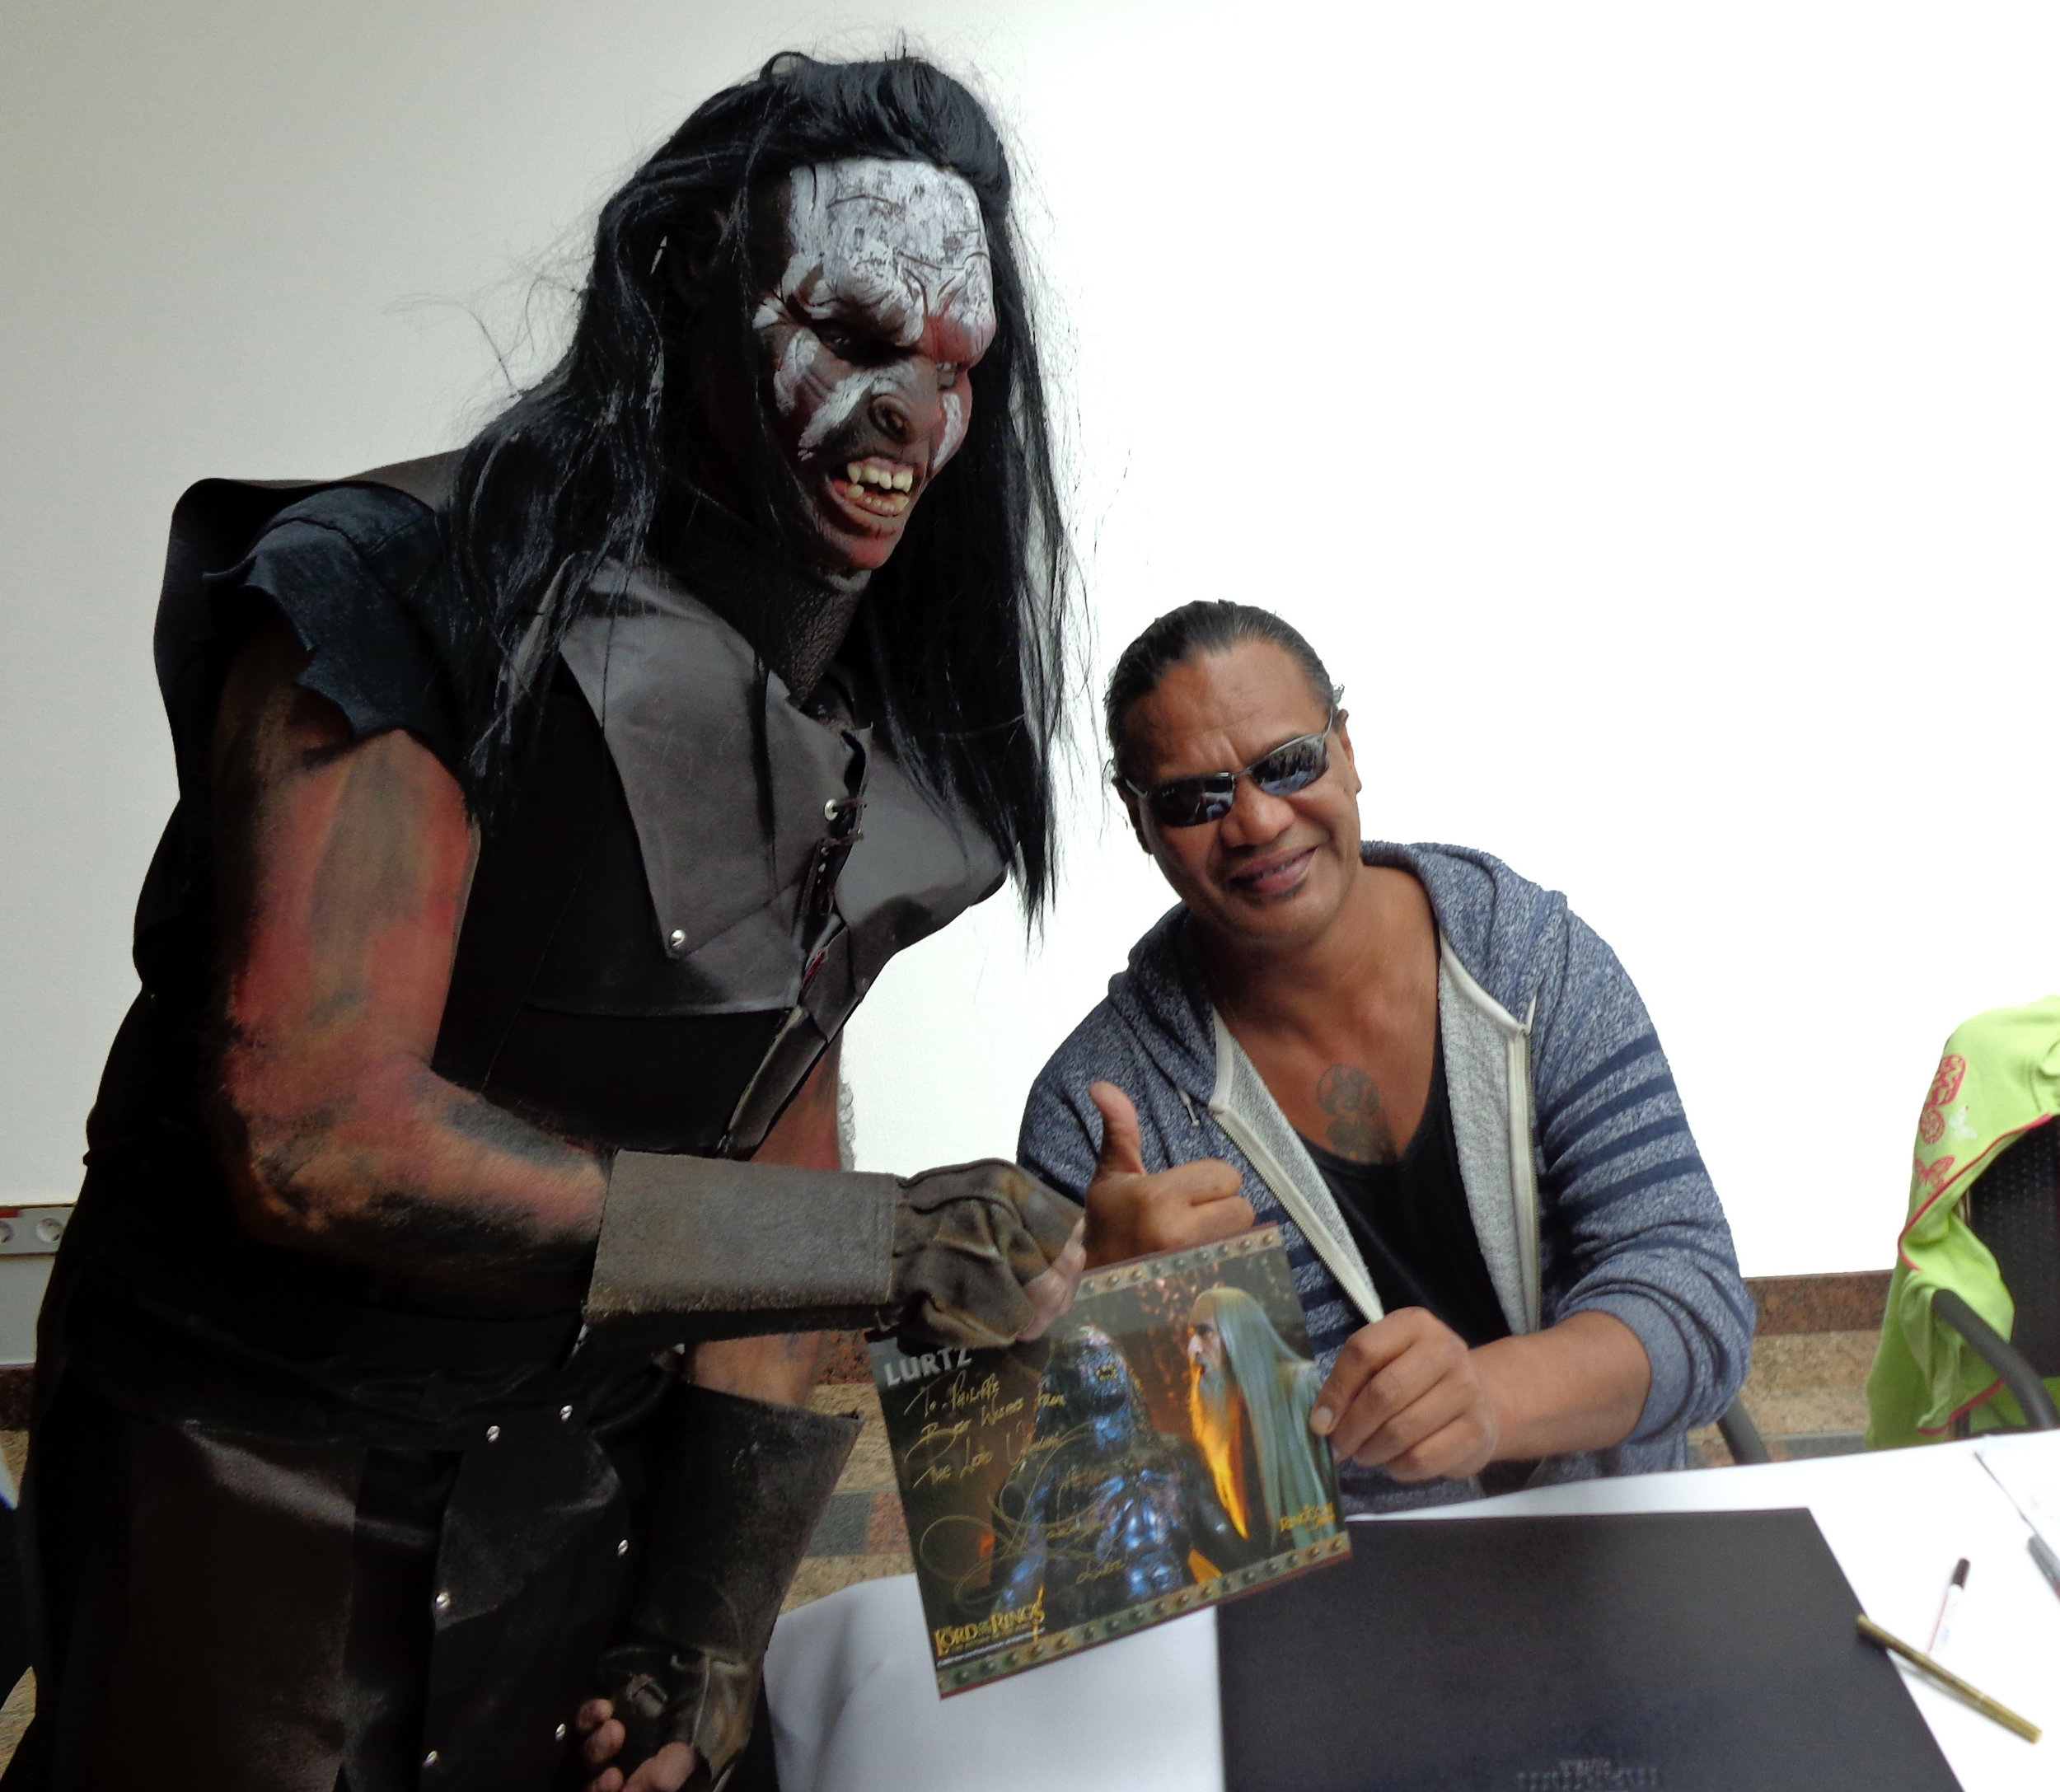 Well, this is mildly awkward now. From Wikimedia Commons, a fan cosplaying as Lurtz the orc from  The Fellowship of the Ring  film adaptation poses with an autographed picture and a cheerful Lawrence Makoare, the Māori actor who played that character.